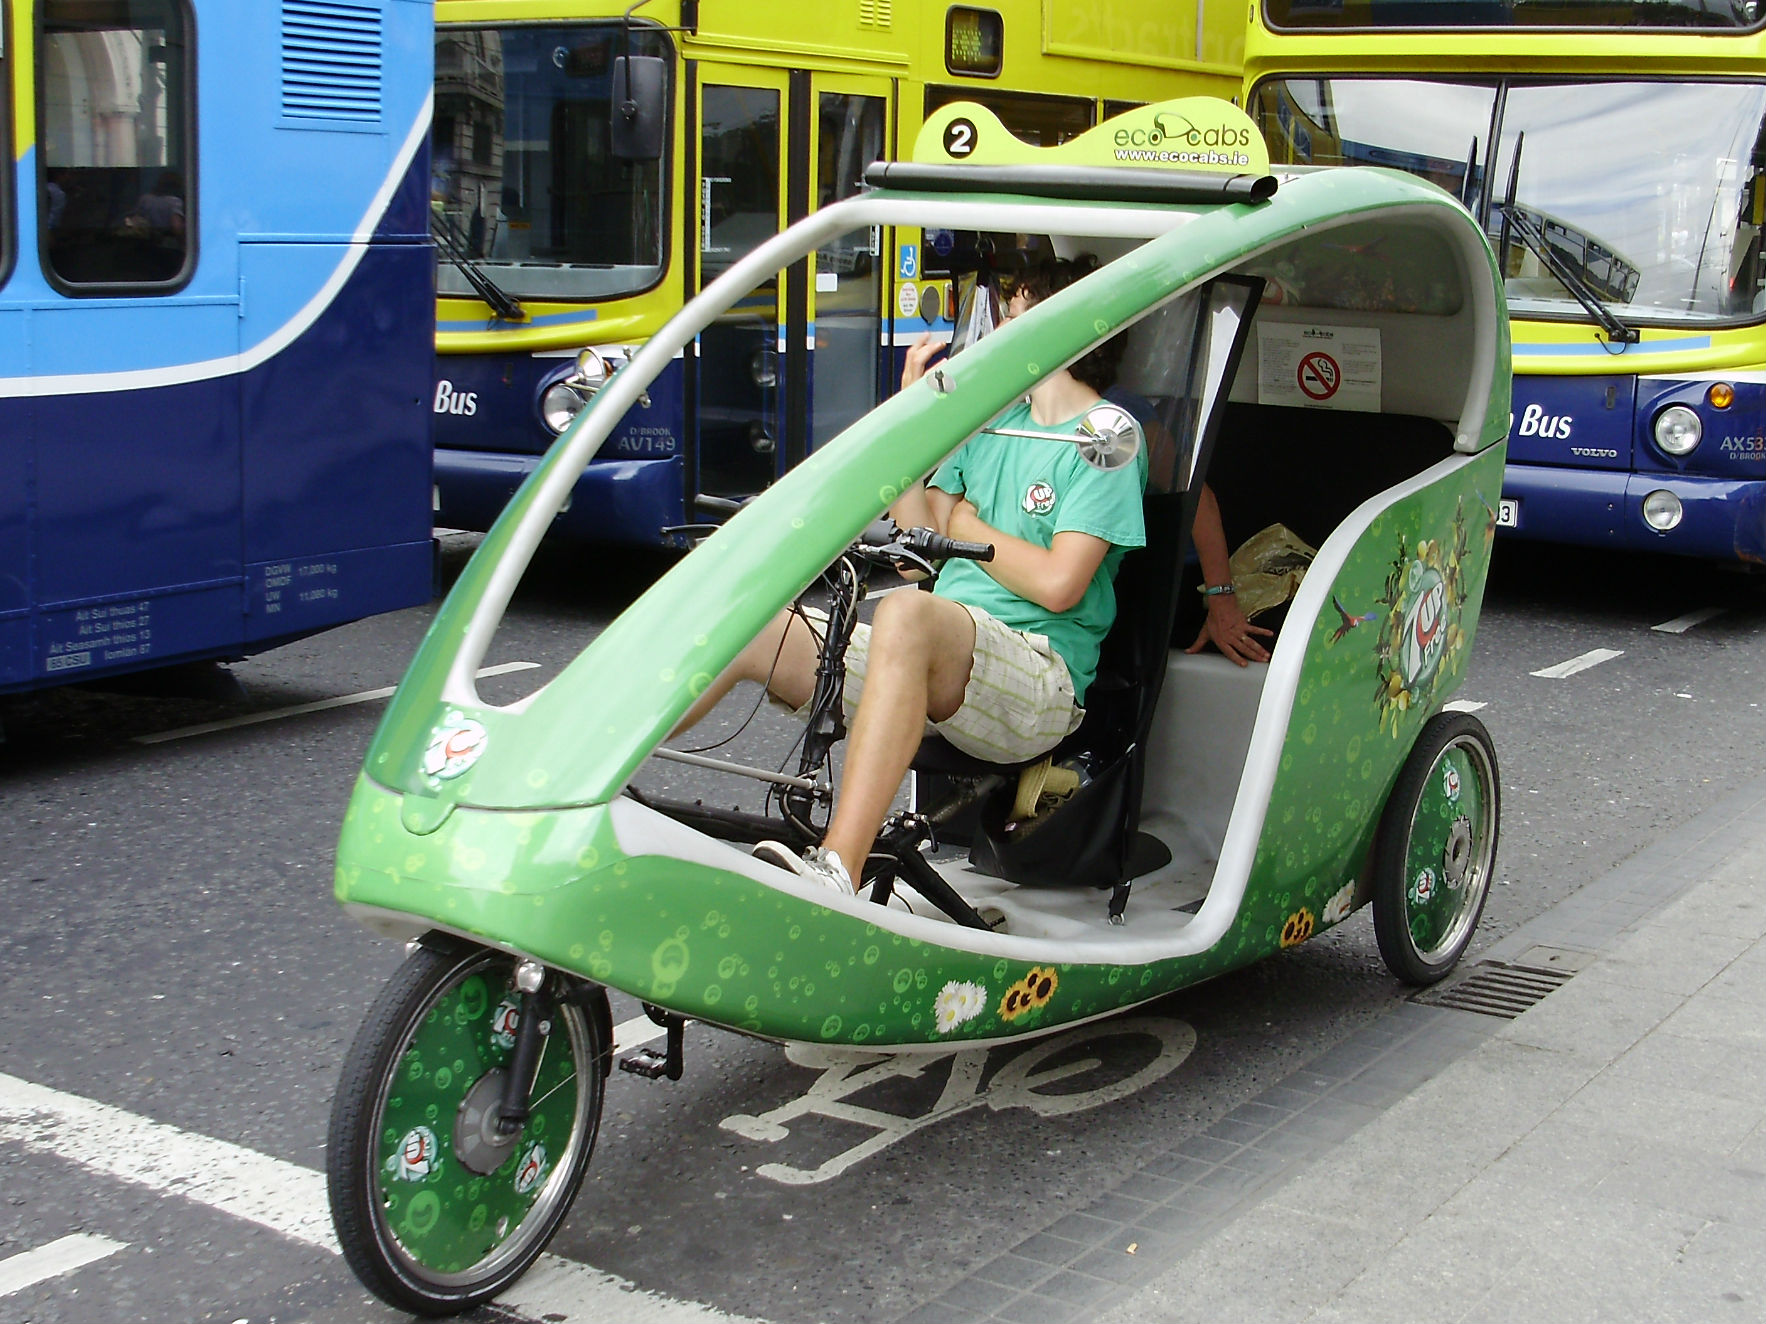 Rickshaw Laws Don't Stand Up